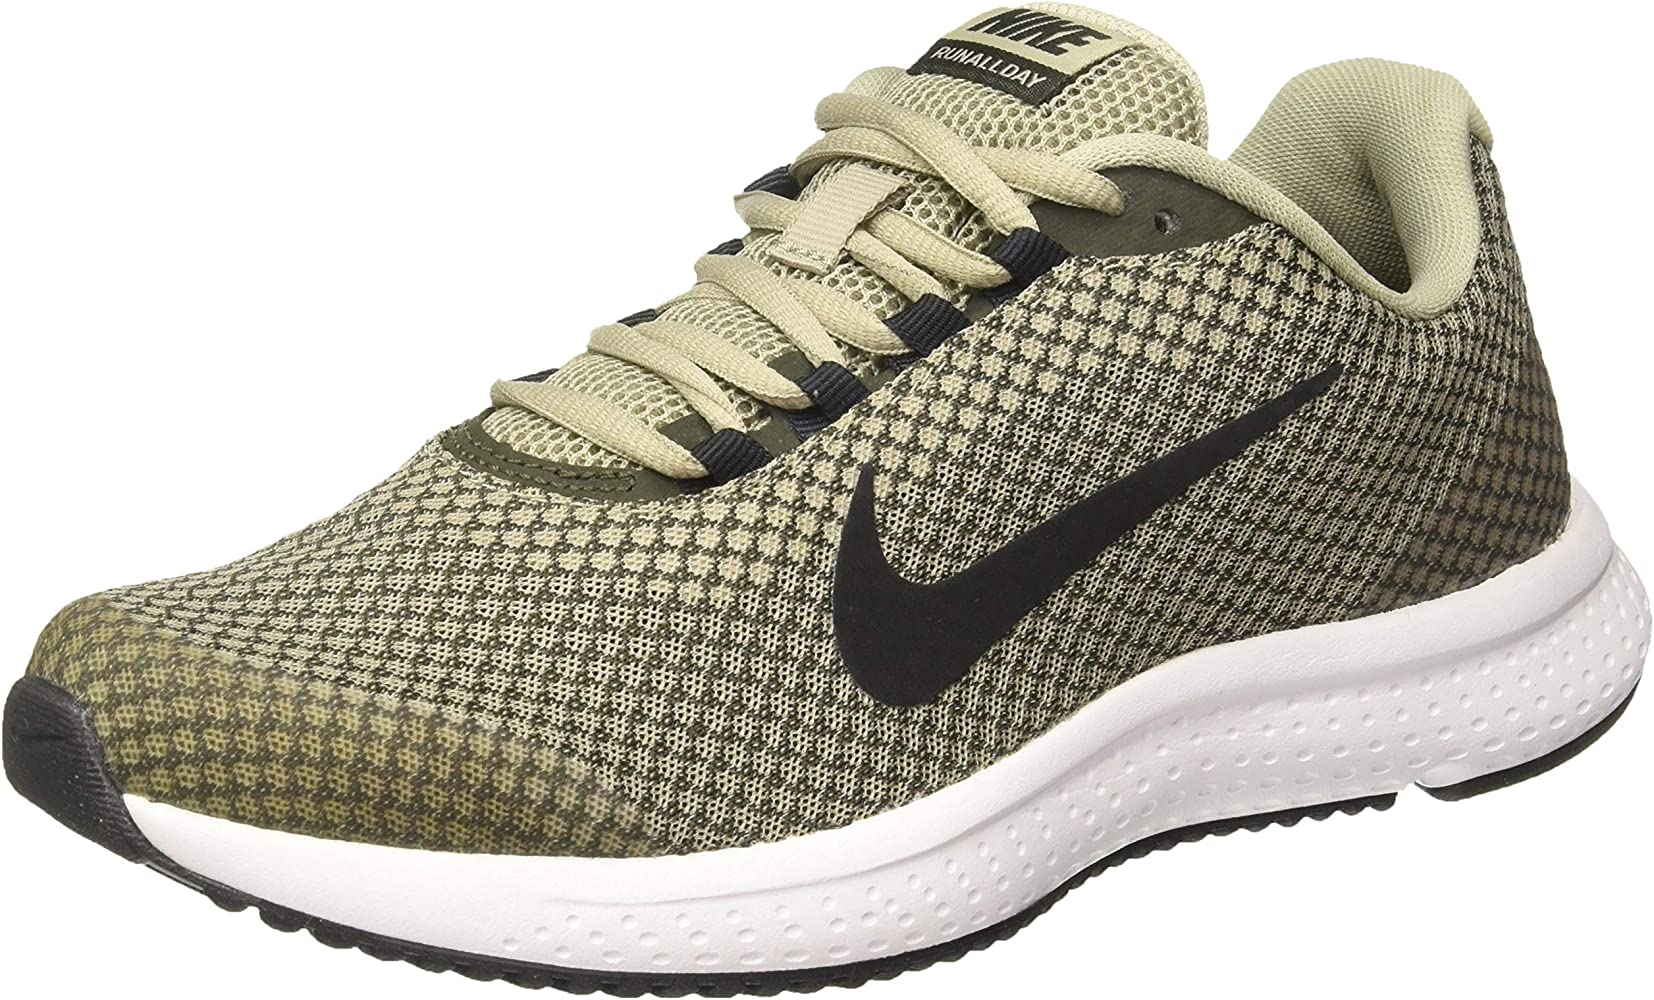 Nike RUNALLDAY, Zapatillas de Atletismo para Hombre, Multicolor (Spruce Fog/Black/Sequoia/White 300), 44.5 EU: Amazon.es: Zapatos y complementos